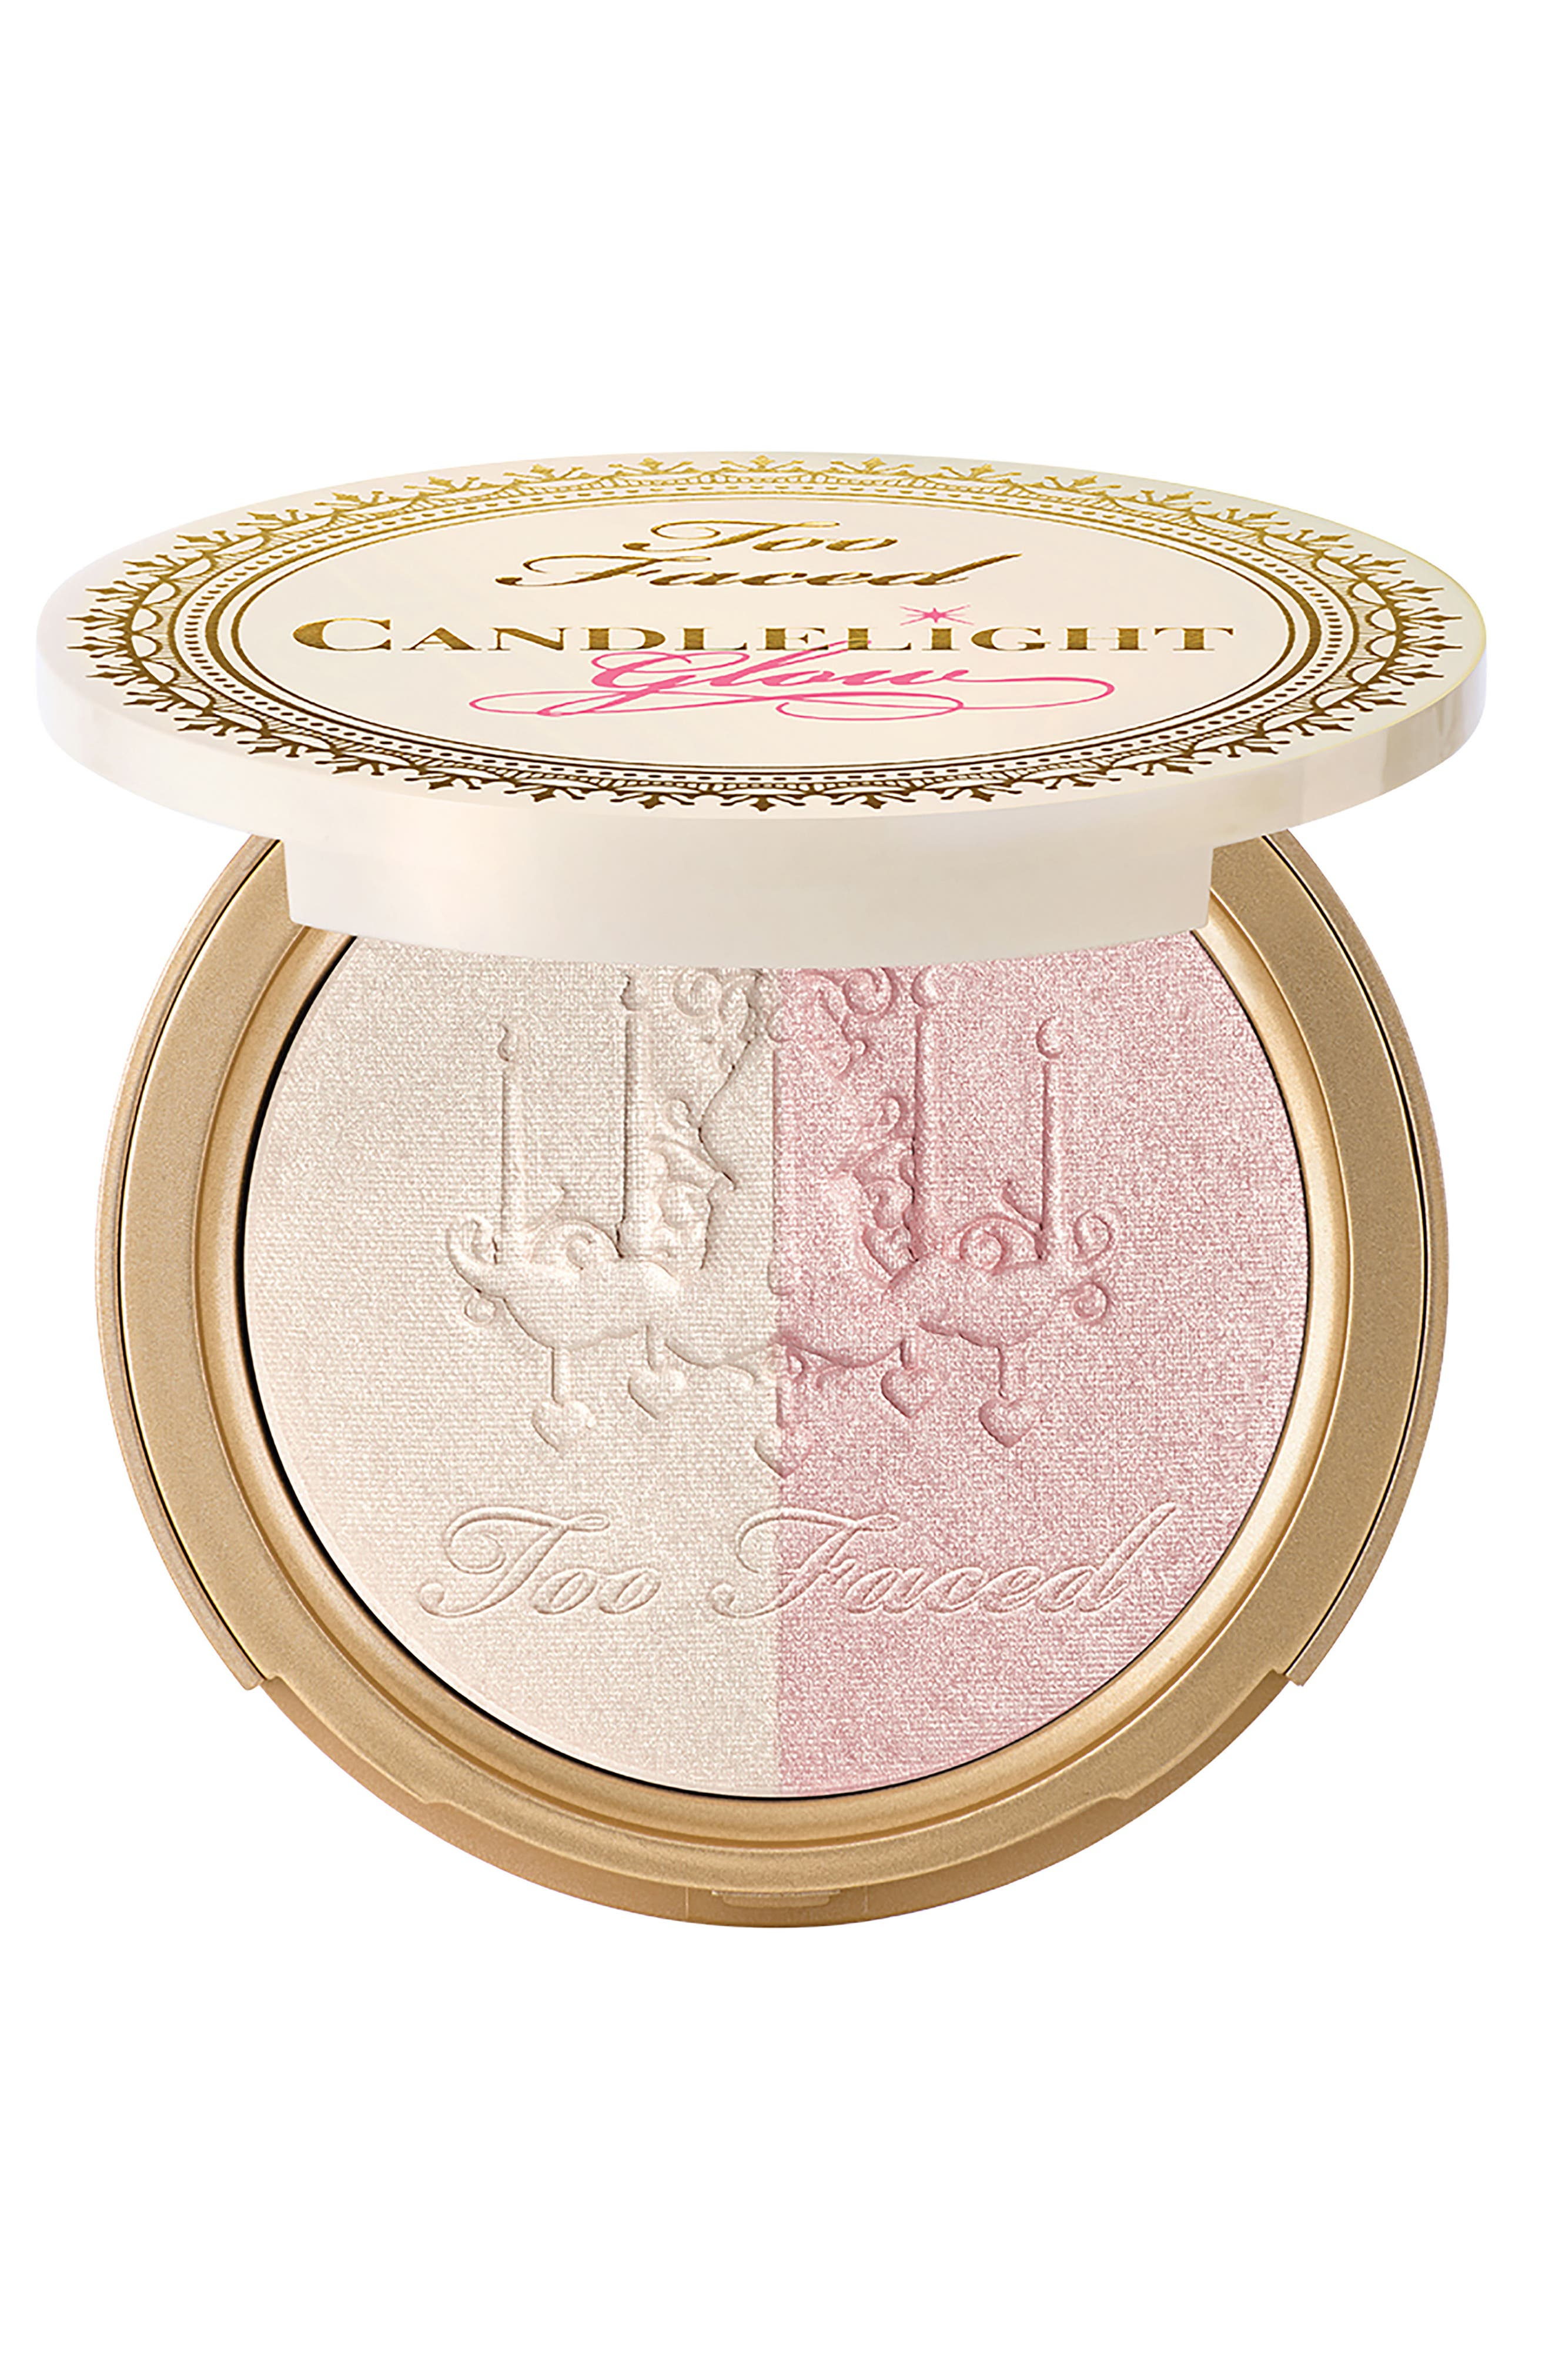 Candlelight Glow Powder,                         Main,                         color, Rosy Glow